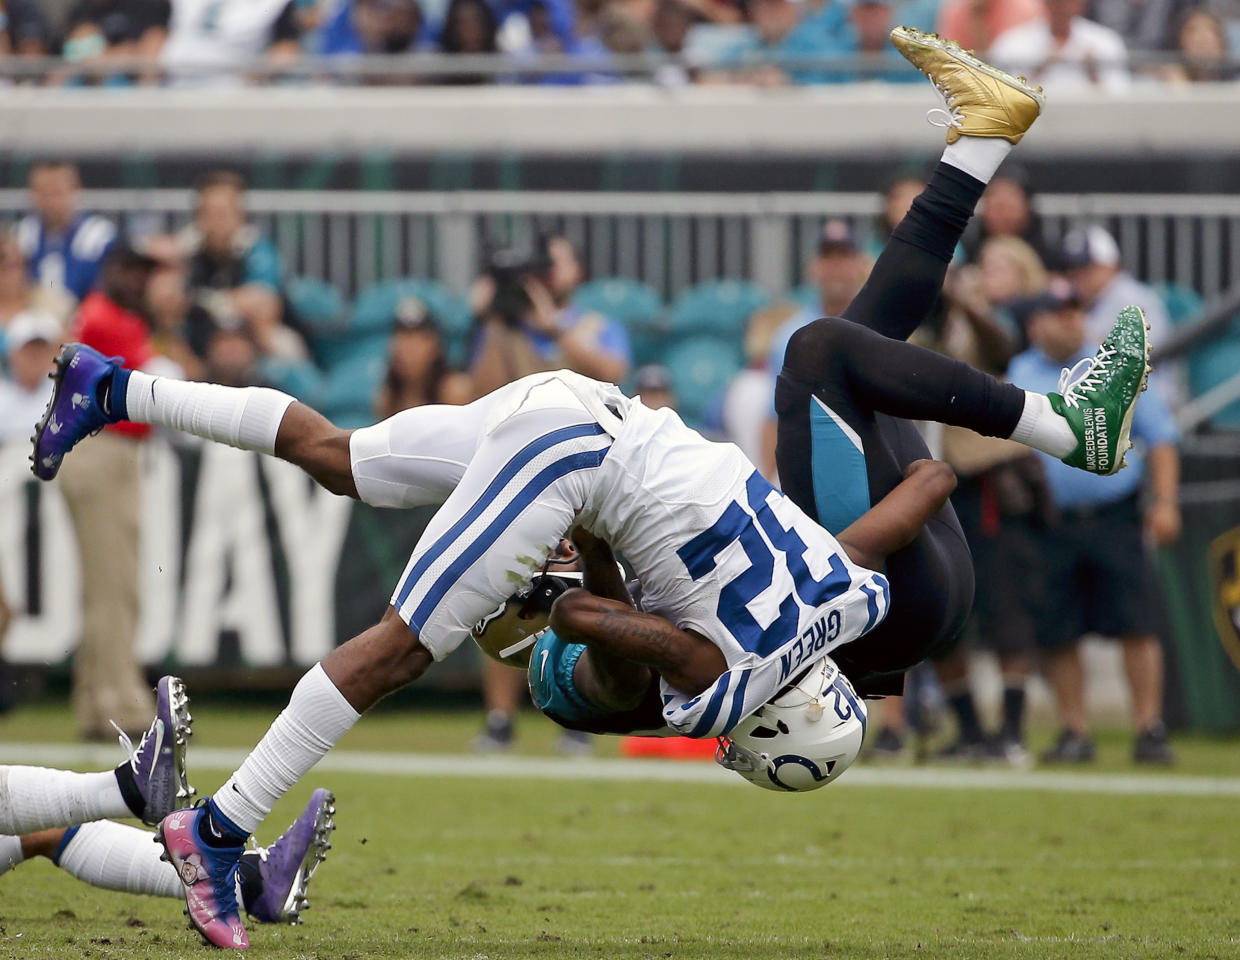 <p>Indianapolis Colts safety T.J. Green (32) flips Jacksonville Jaguars tight end Marcedes Lewis, right, after a reception during the second half of an NFL football game, Sunday, Dec. 3, 2017, in Jacksonville, Fla. (AP Photo/Stephen B. Morton) </p>